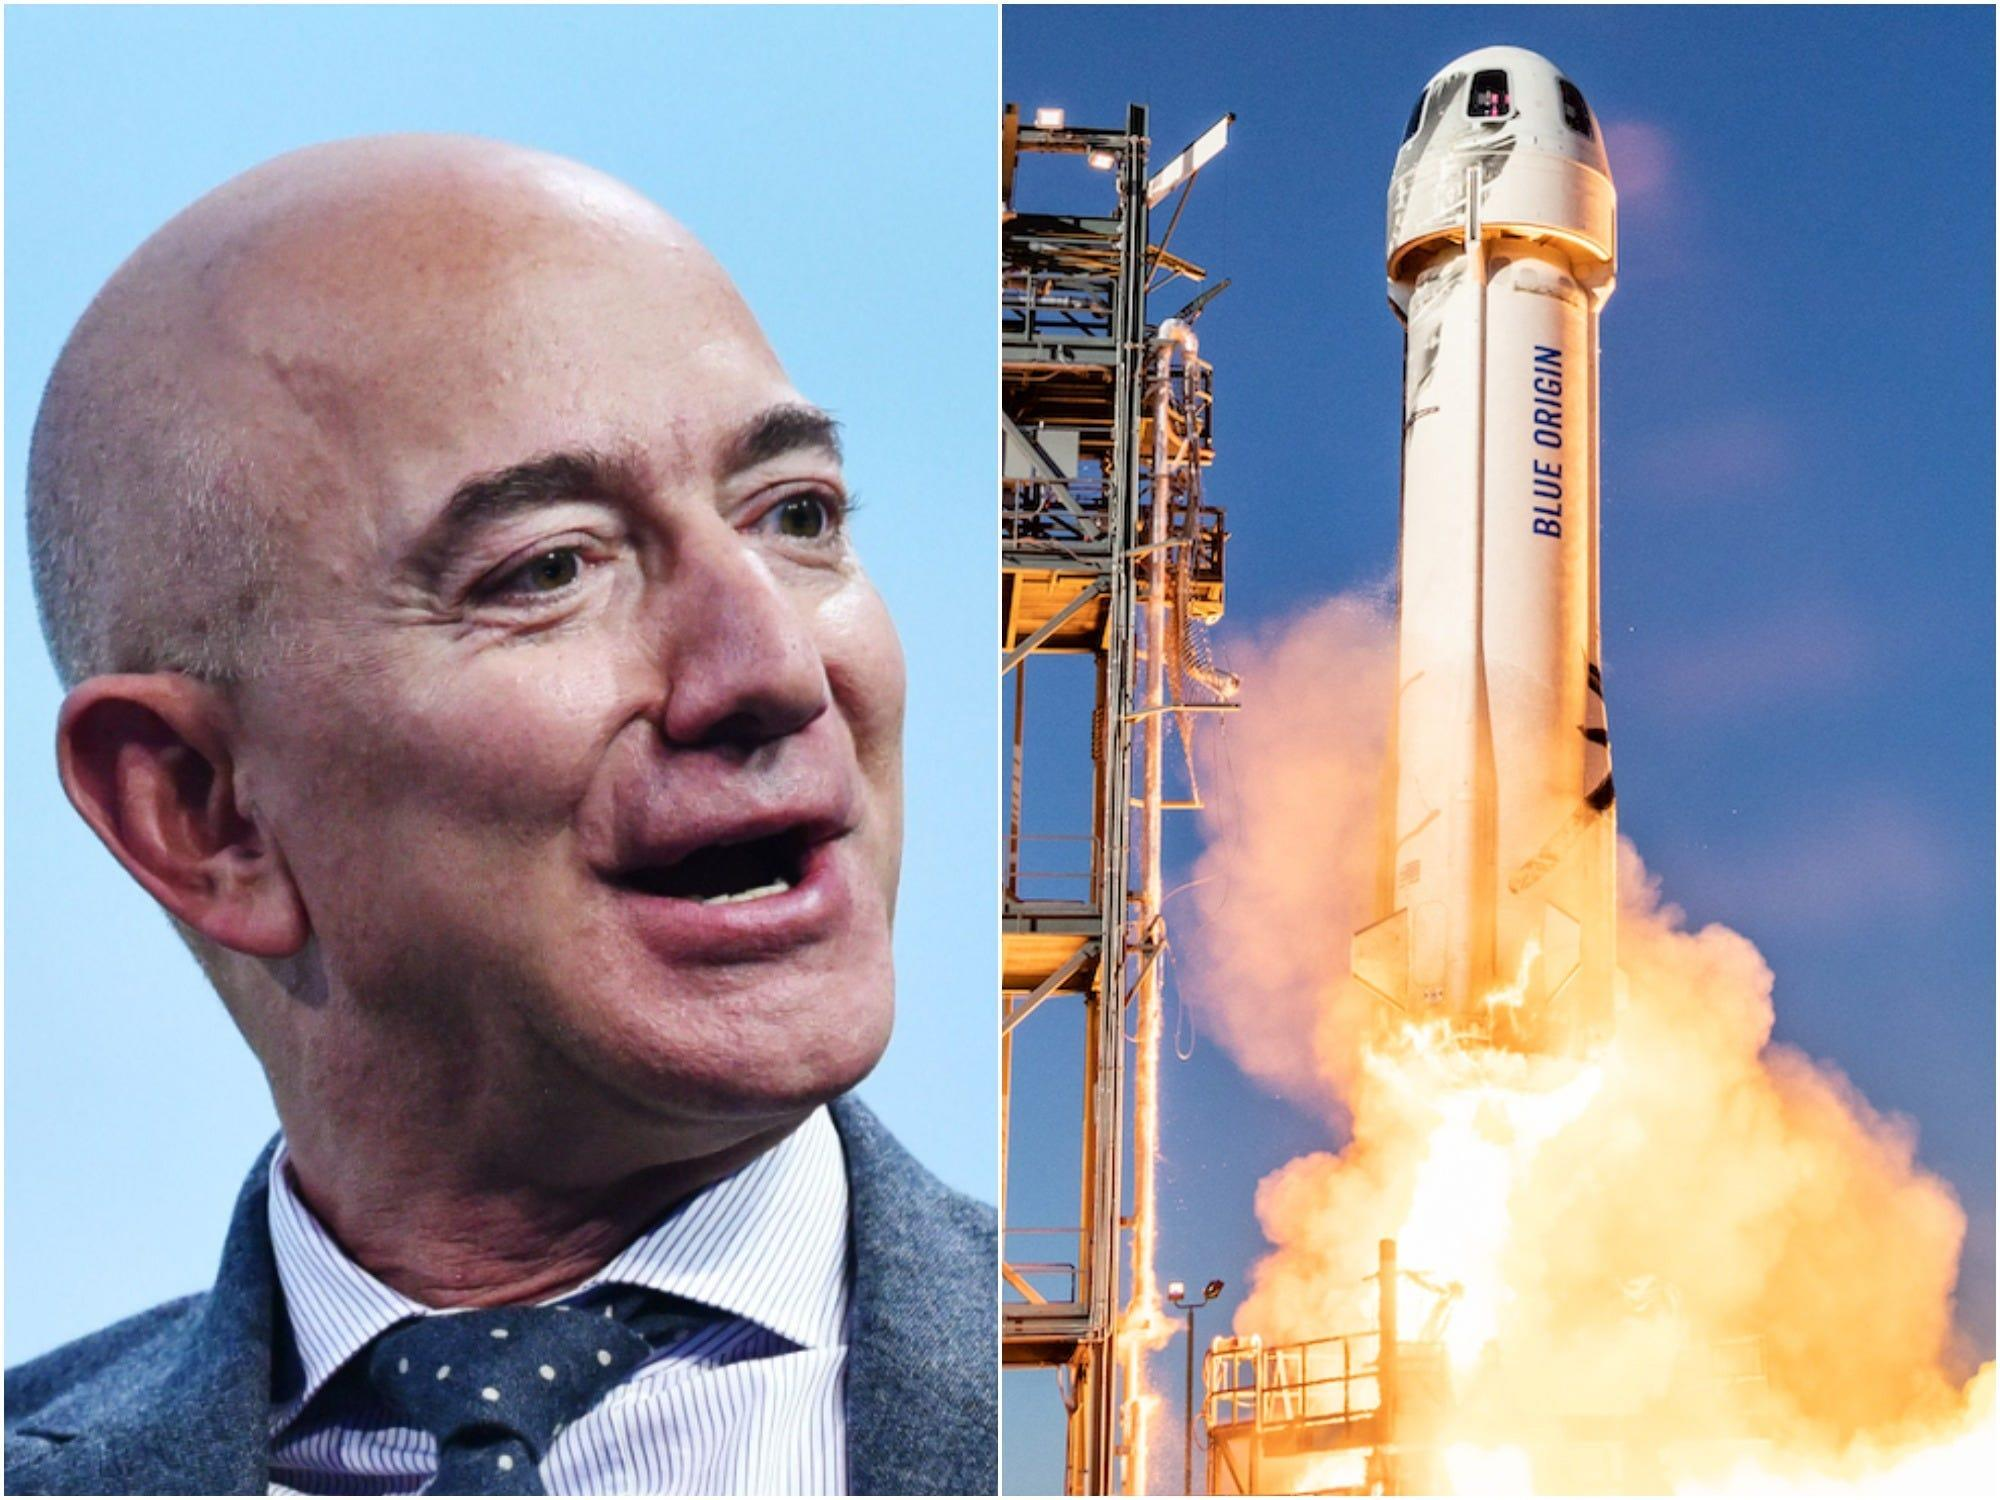 More than 41,000 people have signed petitions to stop Jeff Bezos from returning to Earth after his trip to space next month - Yahoo! Voices